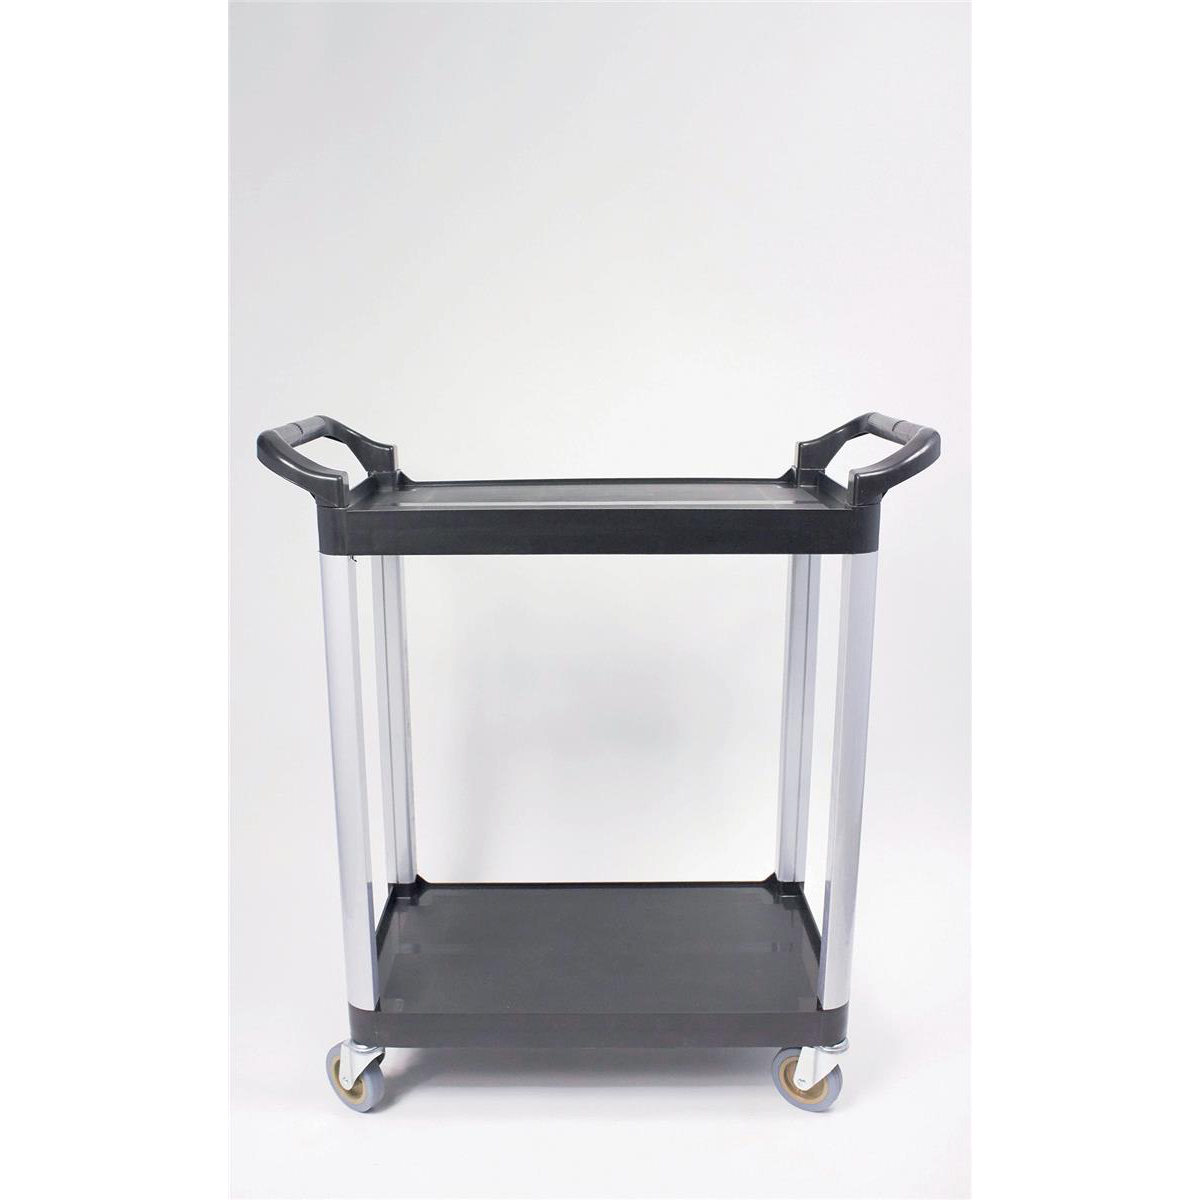 5 Star Facilities Utility Tray Trolley Standard 2 Shelf Capacity 100kg W460xD750xH940mm